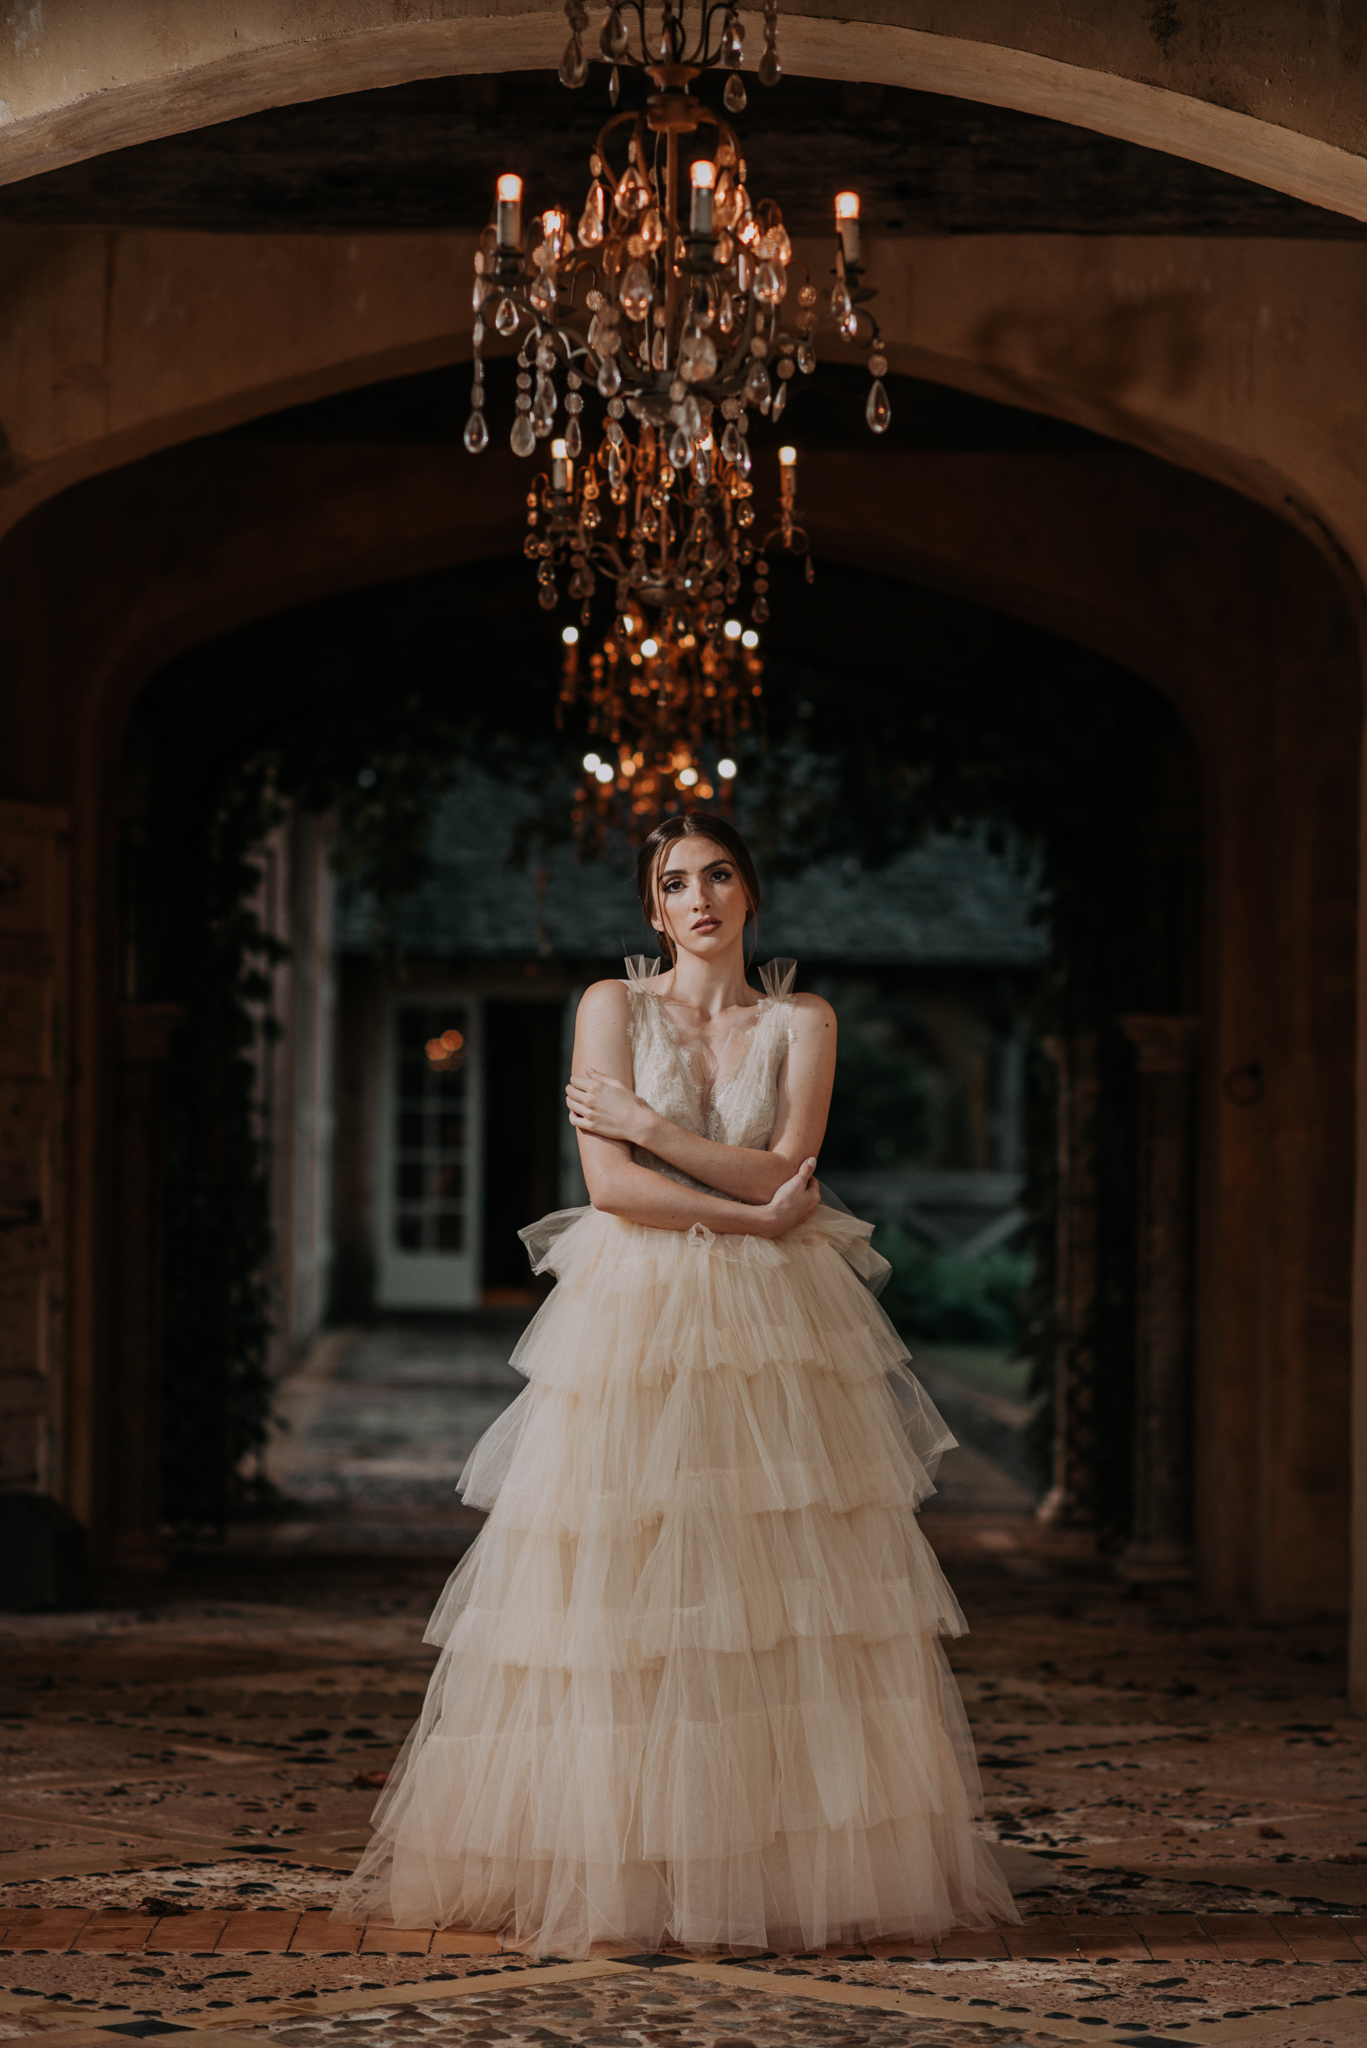 Lovelenscapes Photography X Ulyana Aster Bridal • Les Deux Belettes • Leigh McCoy • Bloodwood Botanica • Alena Iano • Alisa Rudnev • Demi Groot • Jessie Lockley • Maddison Ruby • 150.jpg